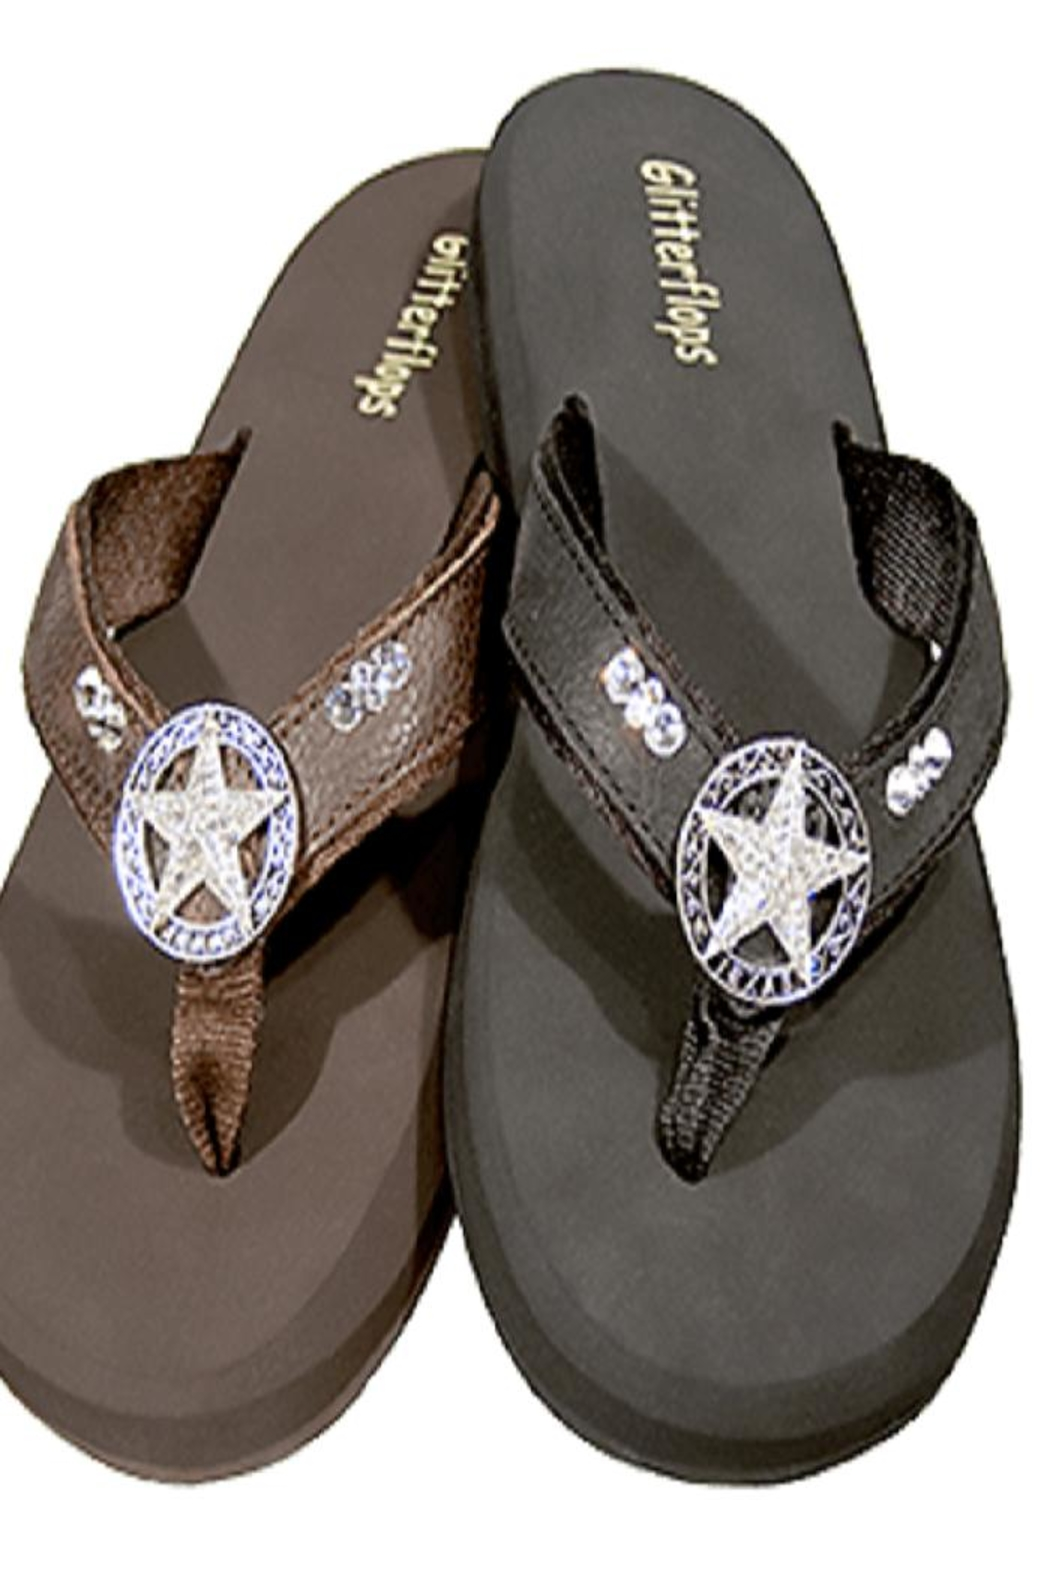 a0e6eade9 Glitterflops Texas Star Flipflops from Texas by Rock2Royal Boutique ...